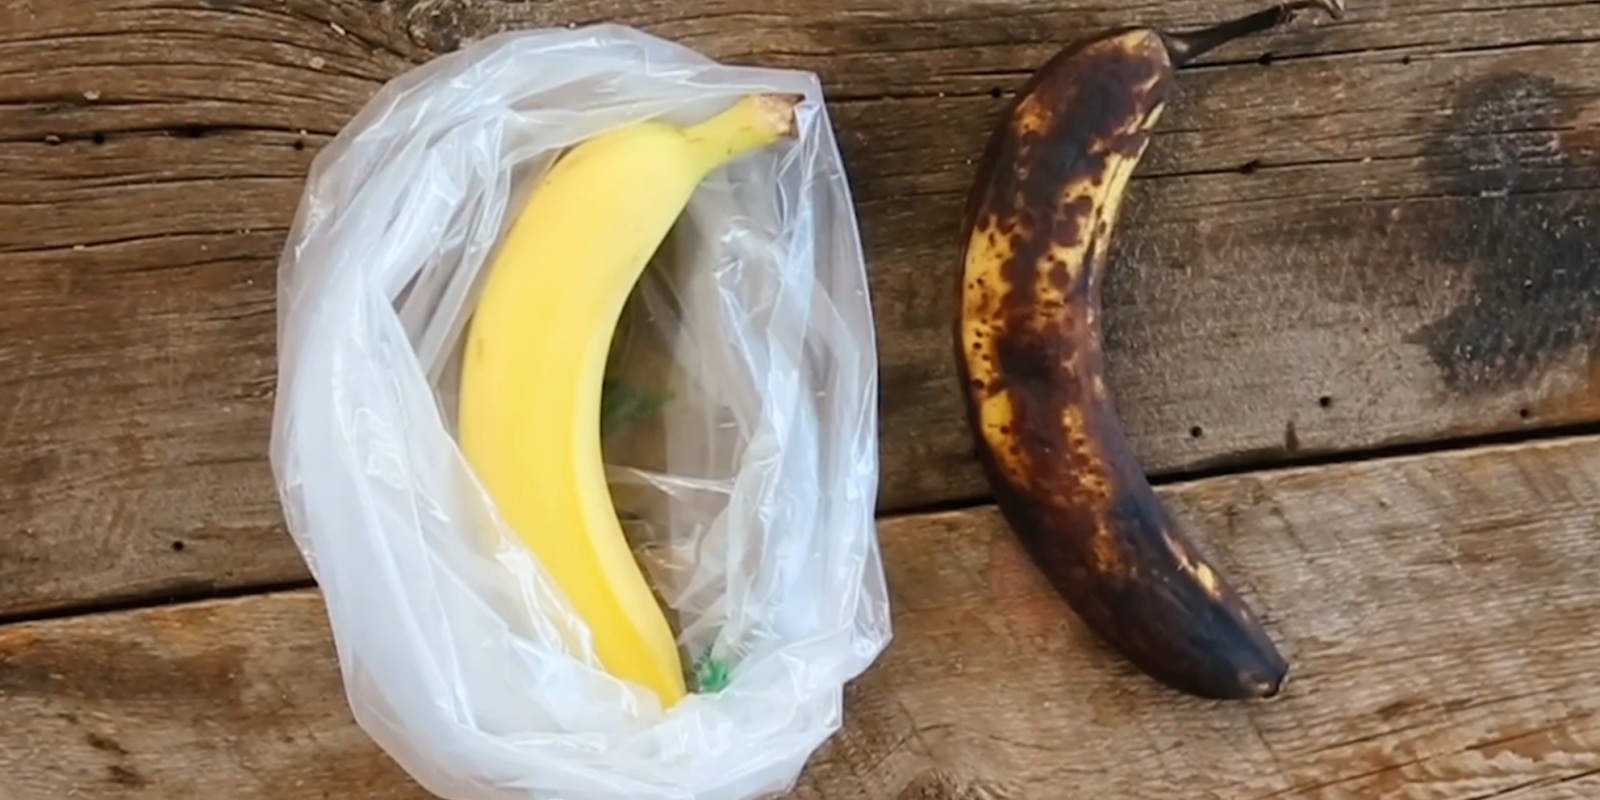 This Handy Storage Bag Keeps Your Produce Fresher, Longer